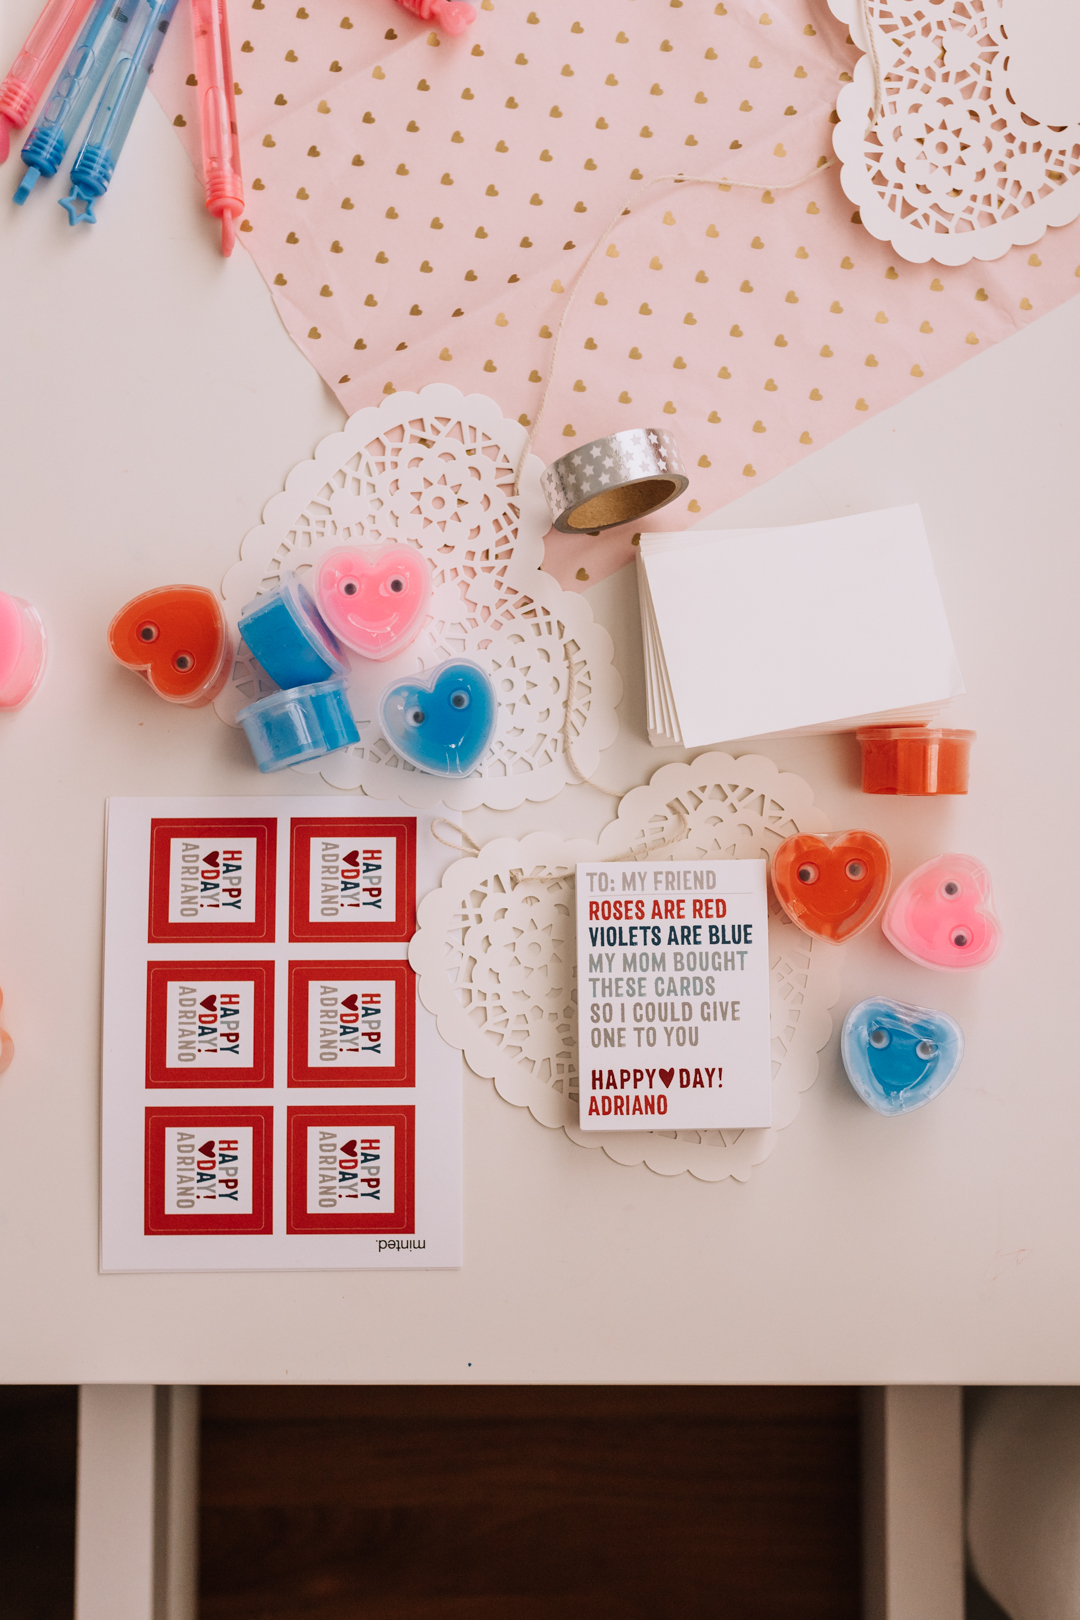 roses are read, violets are blue, my mom bought these cards, so I could give one to you! | thelovedesignedlife.com #cheekyvalentines #bigkidvalentines #noncandyvalentines